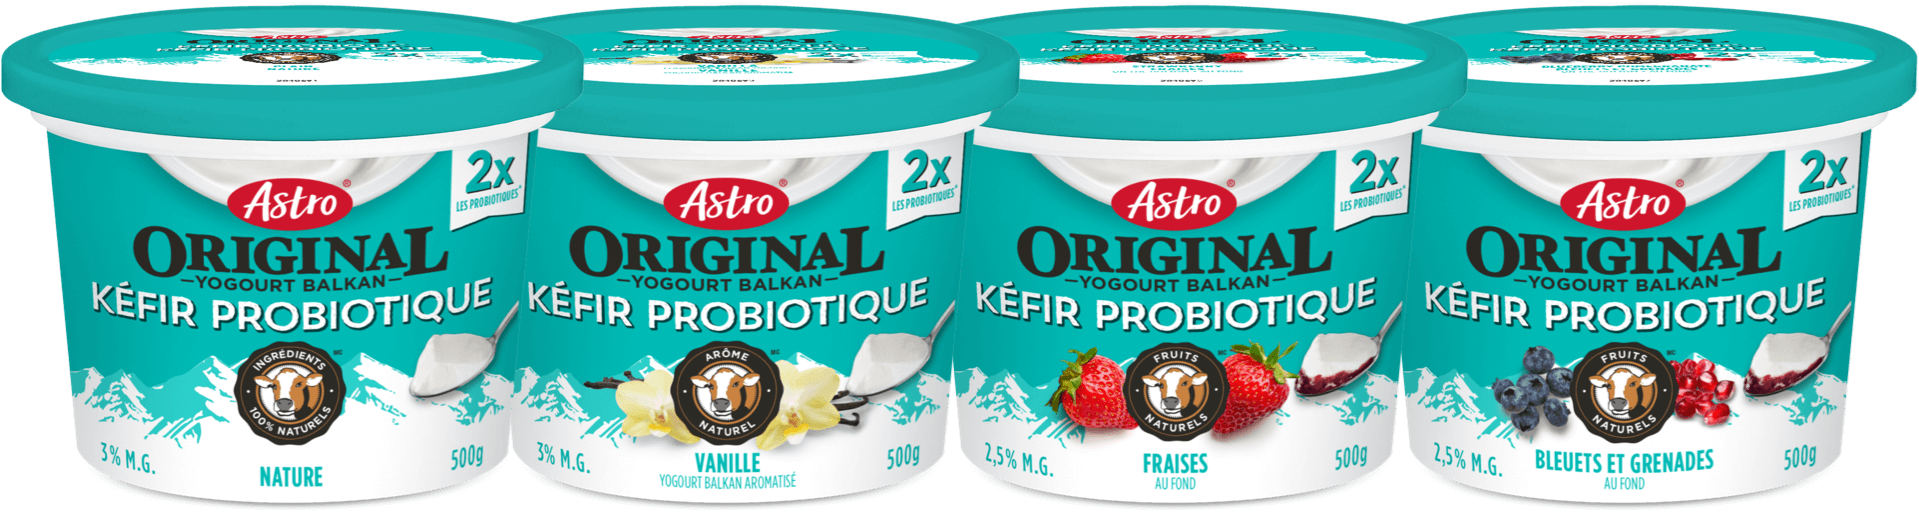 Image of Astro Original Kefir Probiotic products.